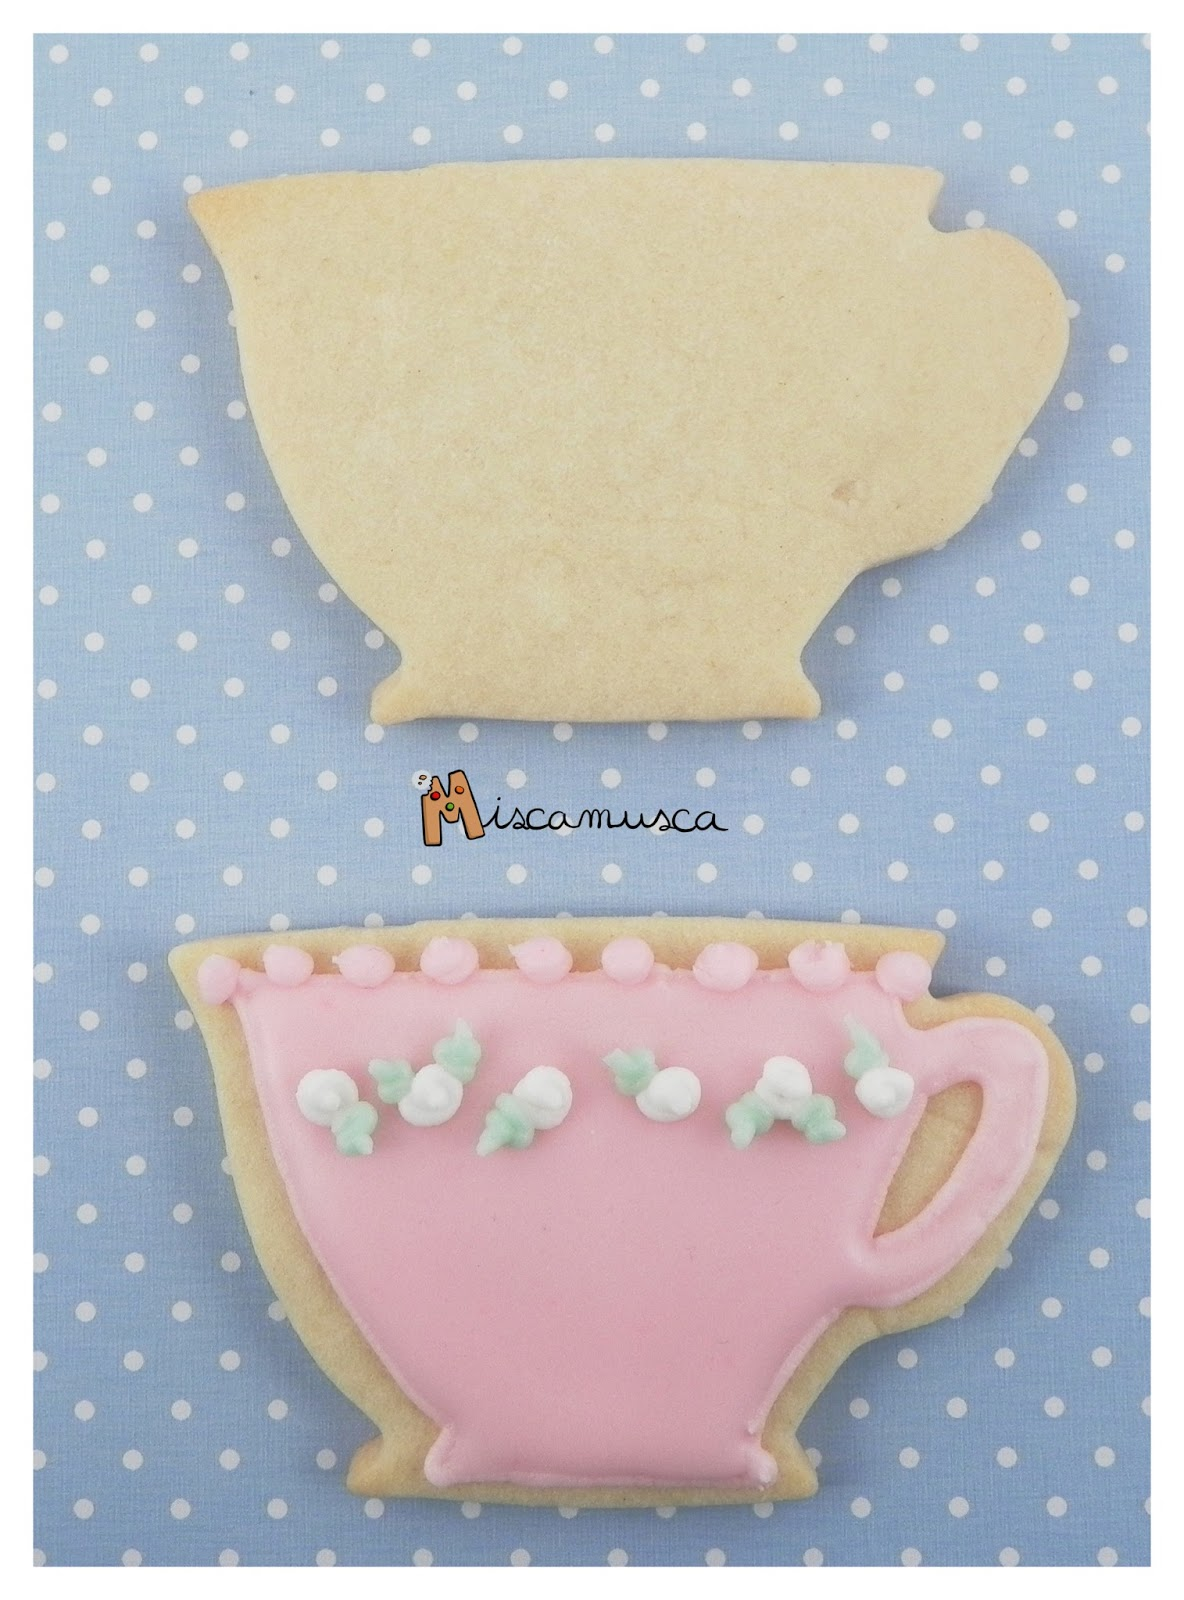 Galleta taza curso galletas decoradas